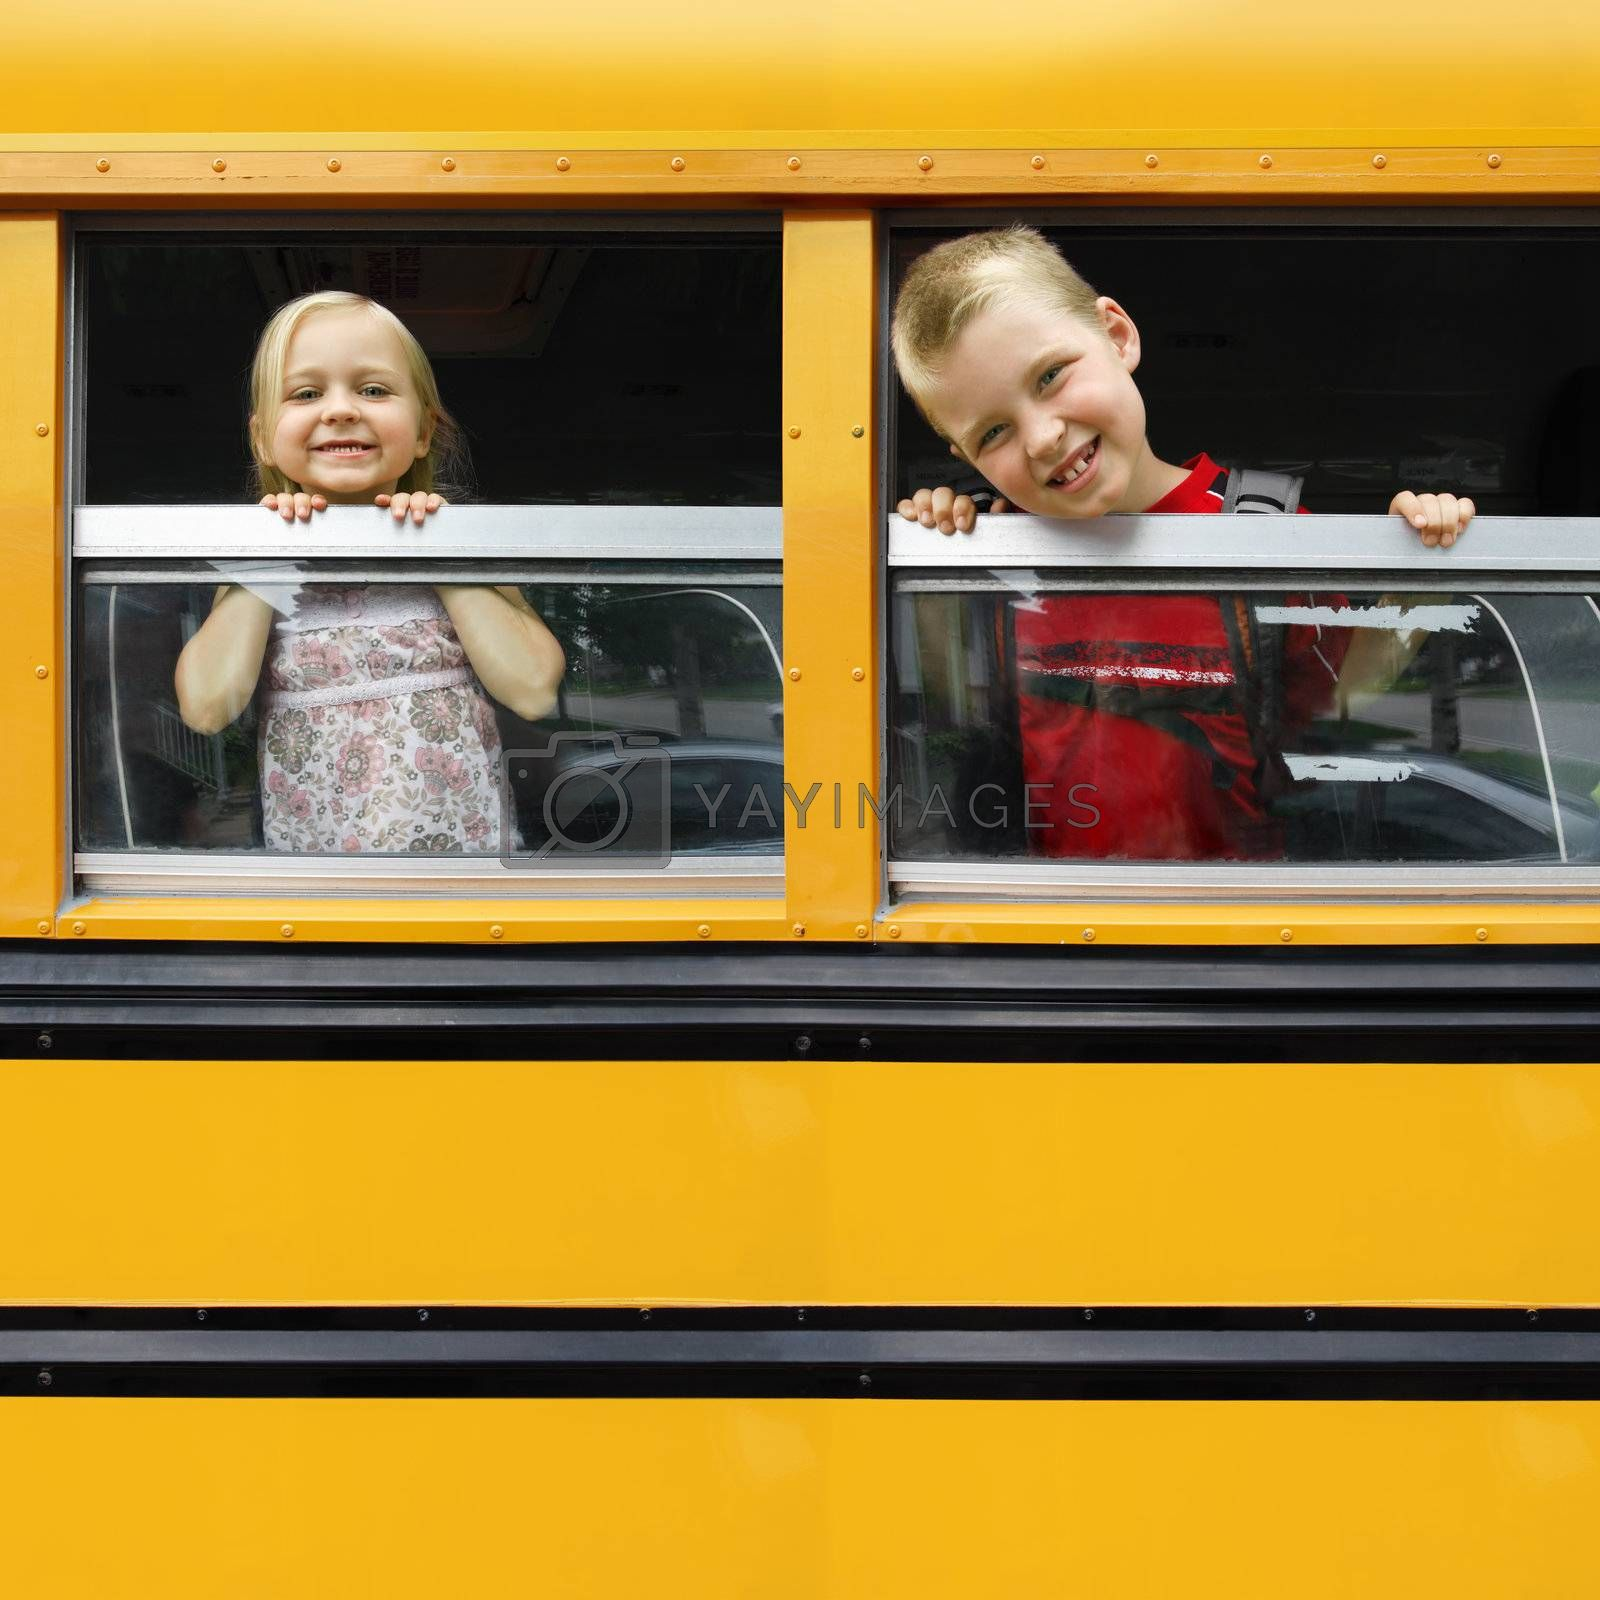 Photo of two happy children looking out the windows of a yellow school bus. Plenty of space for text.